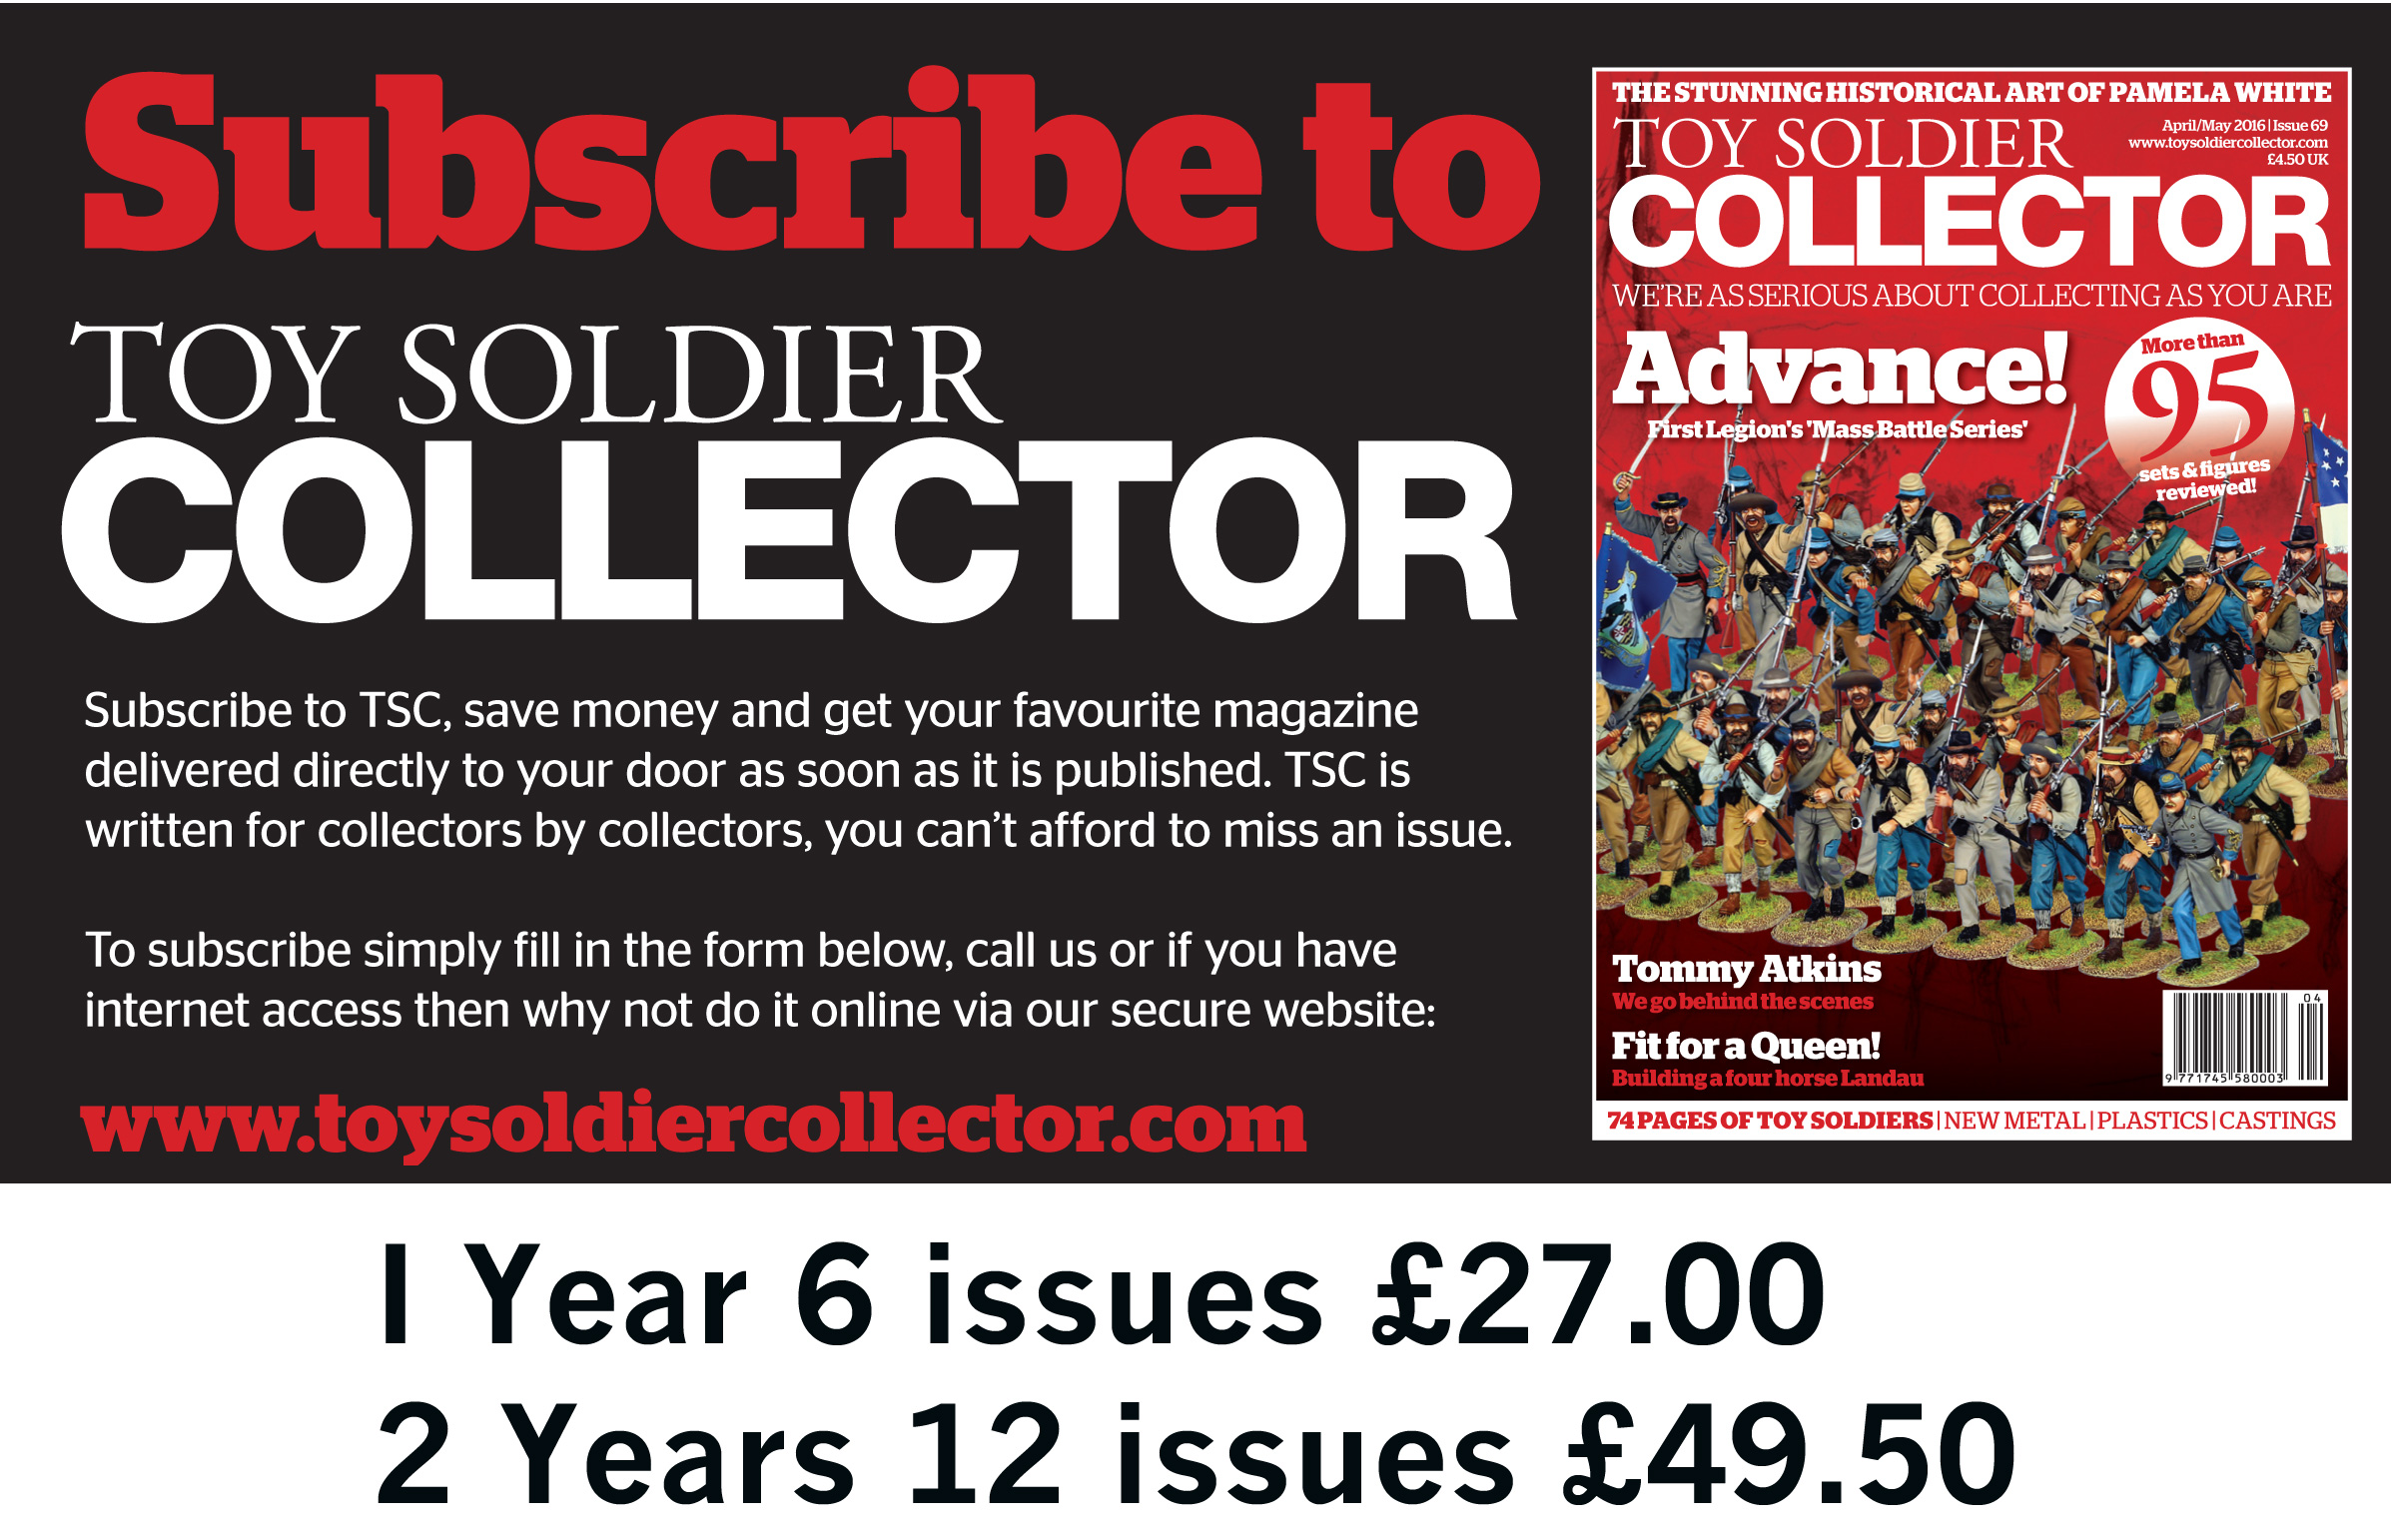 Guideline Publications Toy Soldier Collector - 2 Year (12 Issues) Subscription